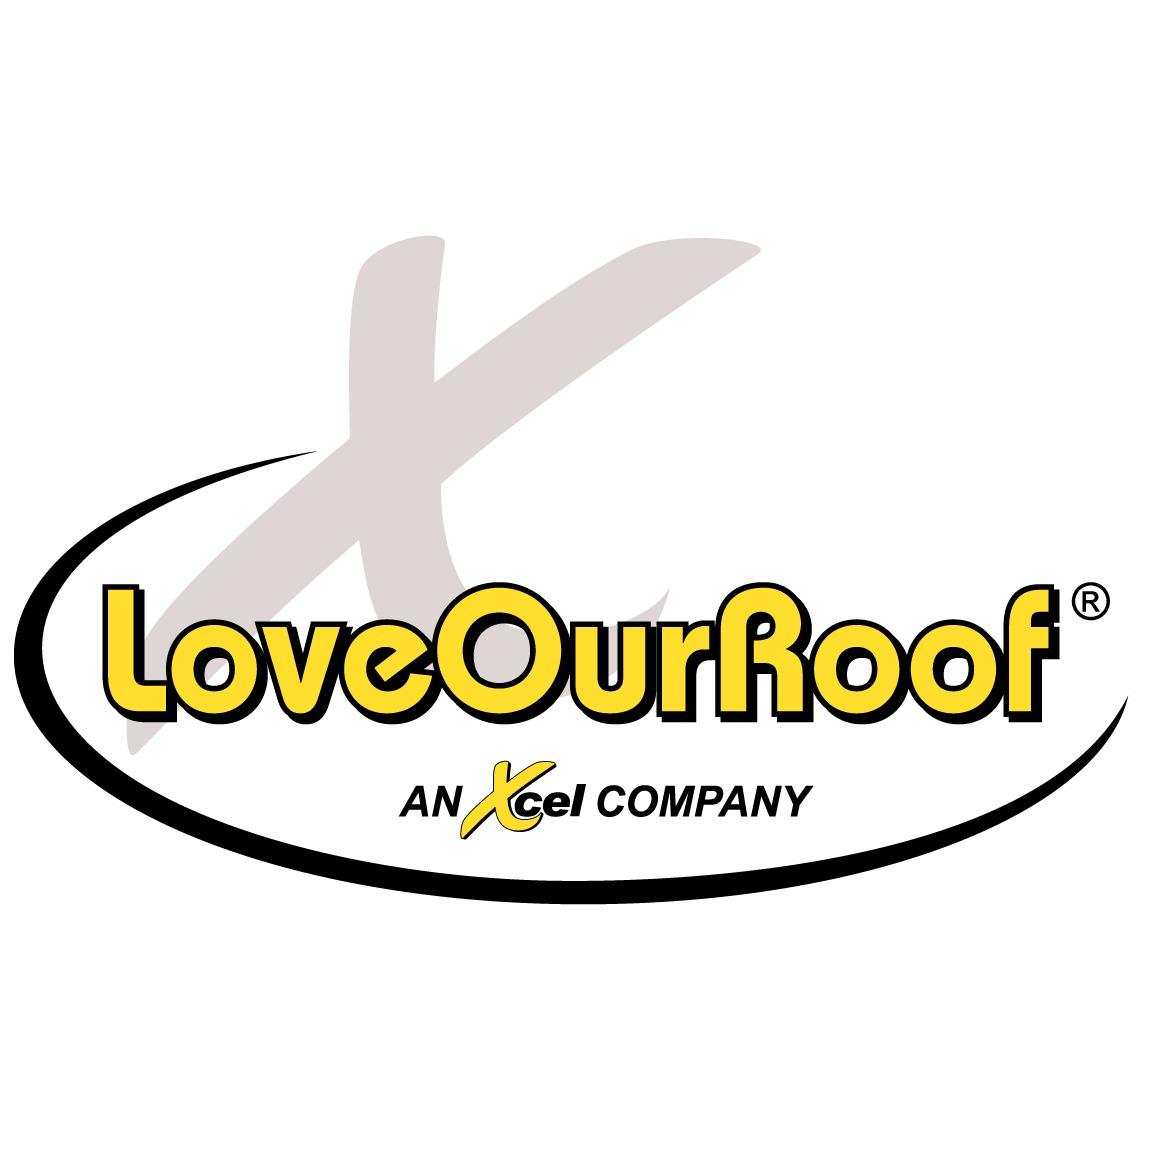 LoveOurRoof, an Xcel Company